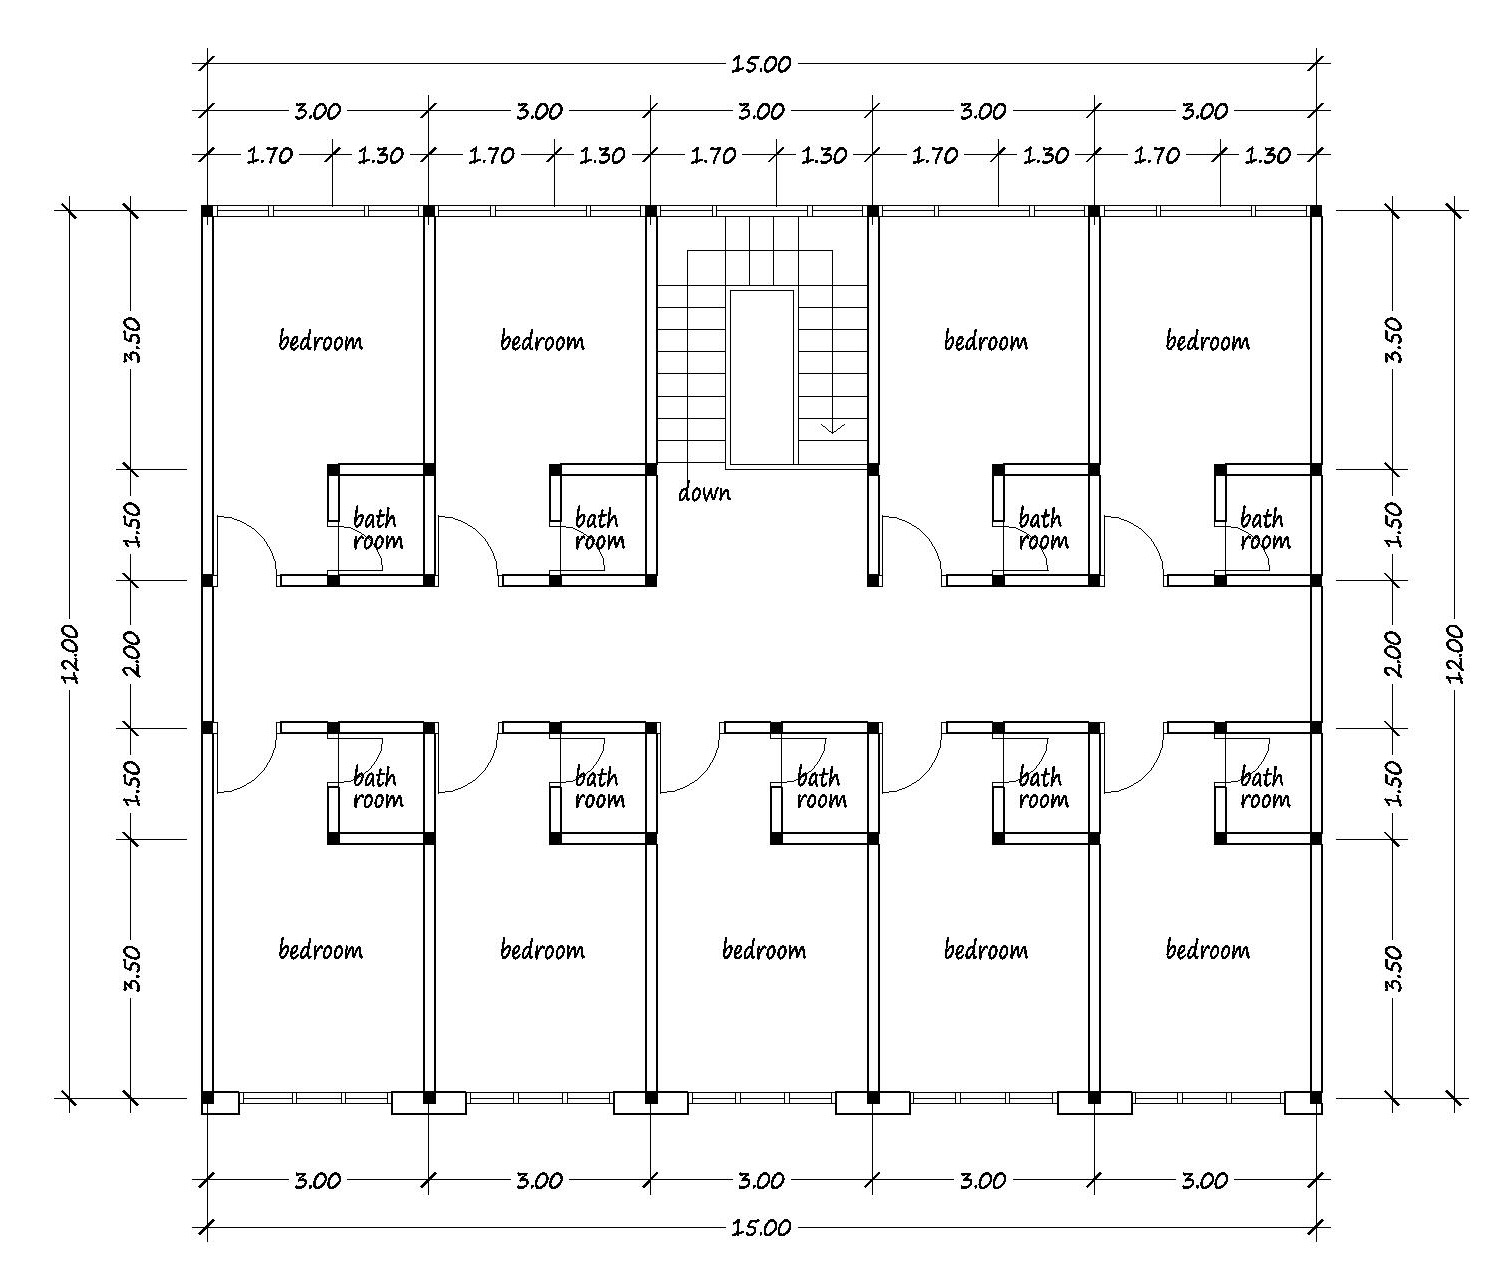 House plans for you plans image design and about house for House plans floor plans